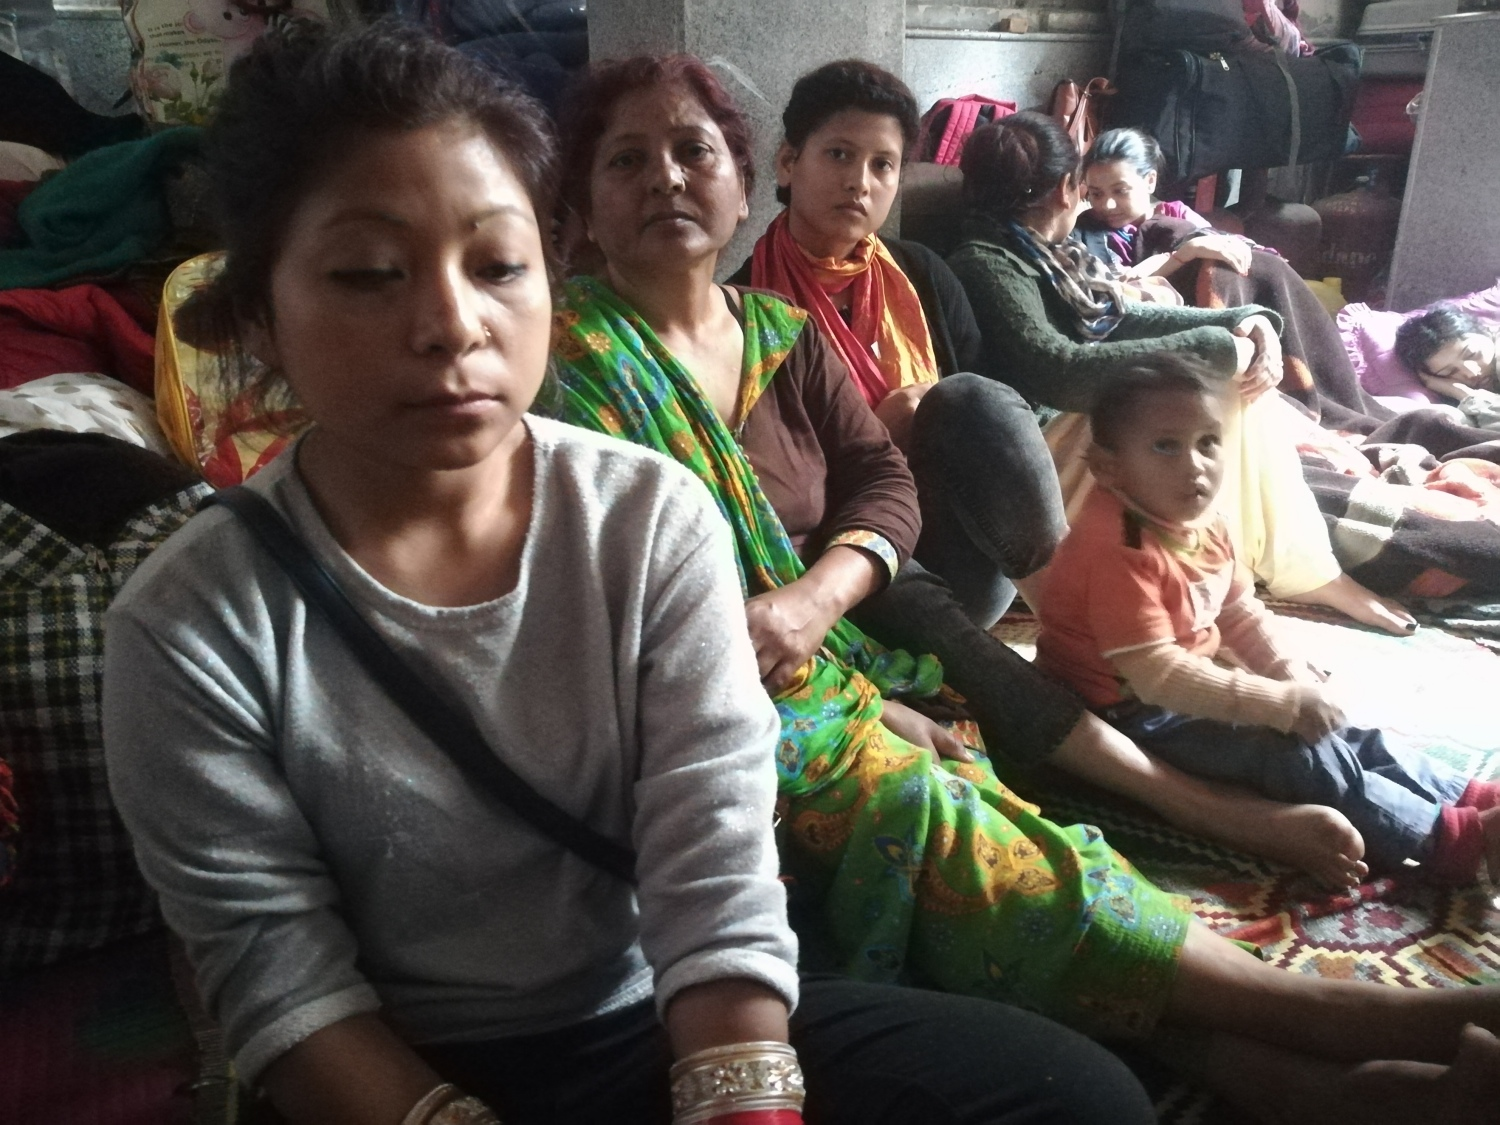 Dalri Sangma, a Garo woman, married a Punjabi man from Shillong's Punjabi Line colony two months ago, and is expecting their first child. She has taken refuge in the gurdwara, along with her in-laws.